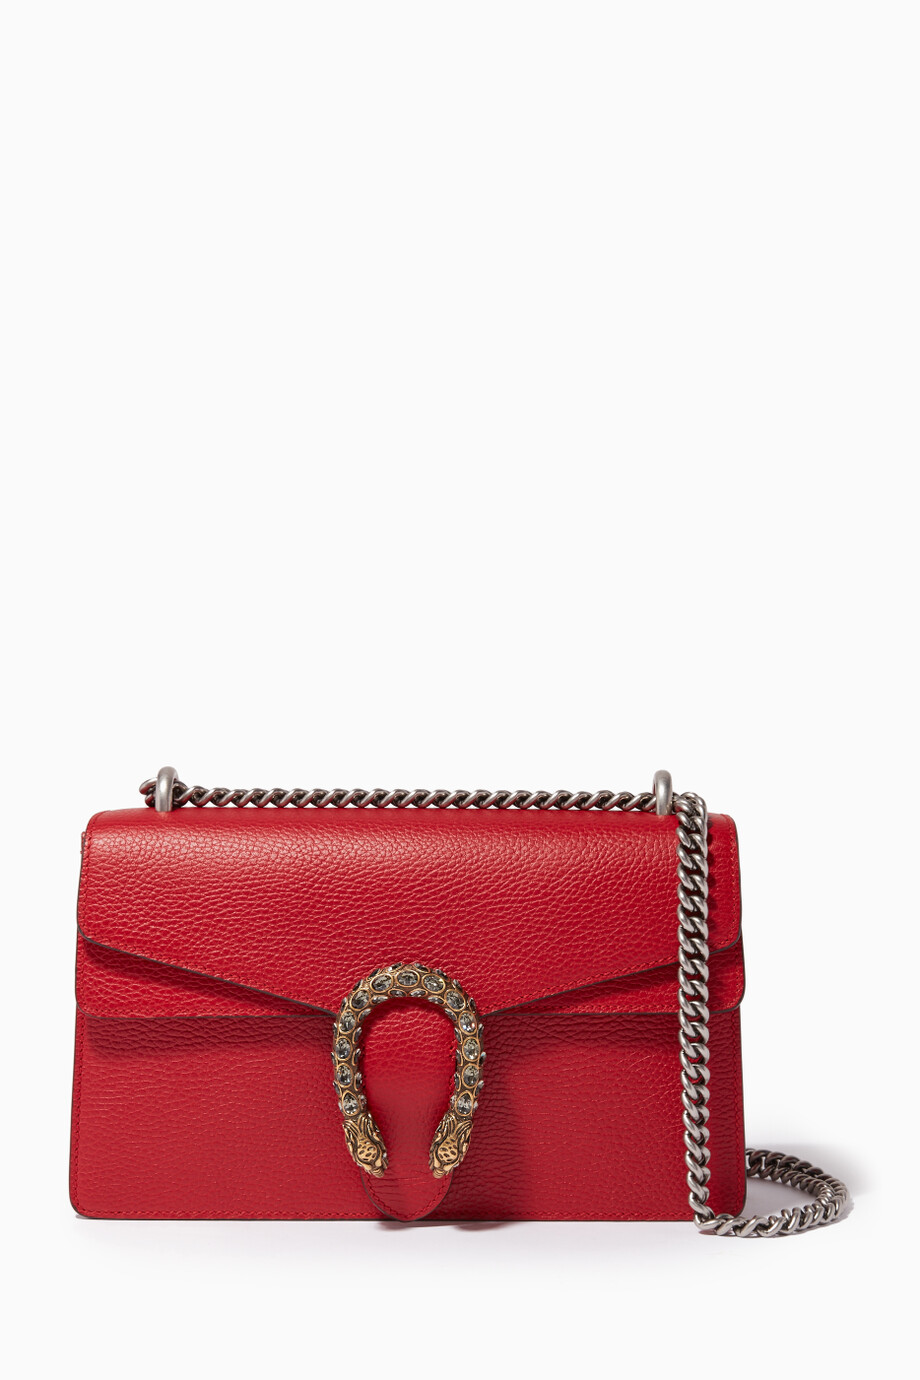 533426f1adfa Shop Gucci Red Red Dionysus Leather Shoulder Bag for Women | Ounass